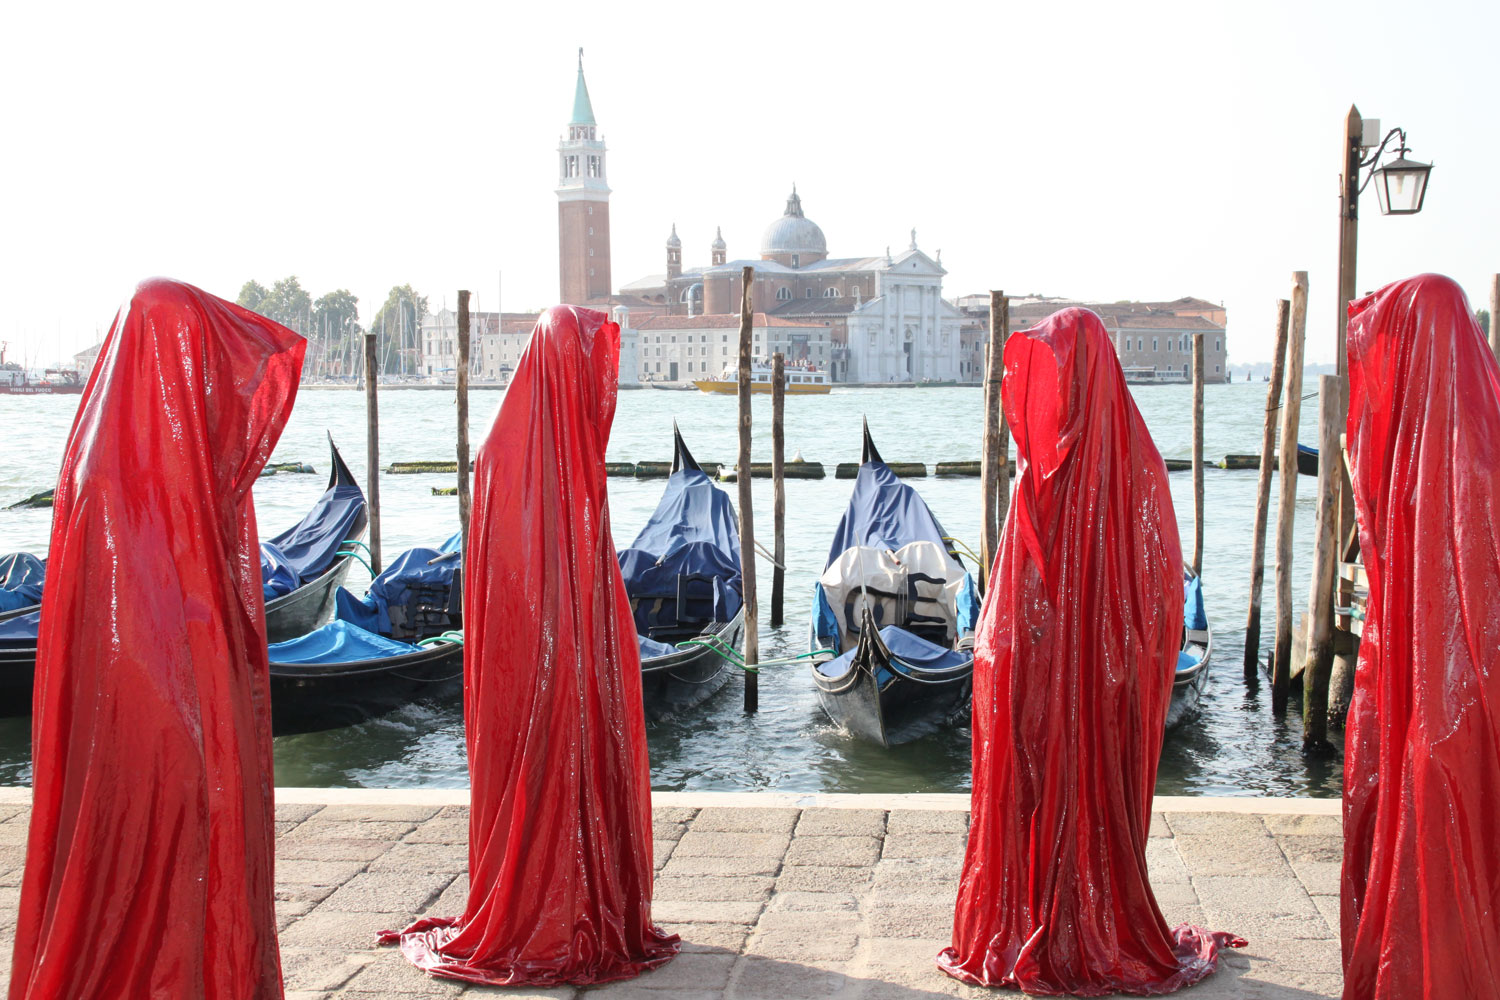 public biennale de arte venice international world light art arts design exhibition sculpture guardians of time manfred kielnhofer 4344